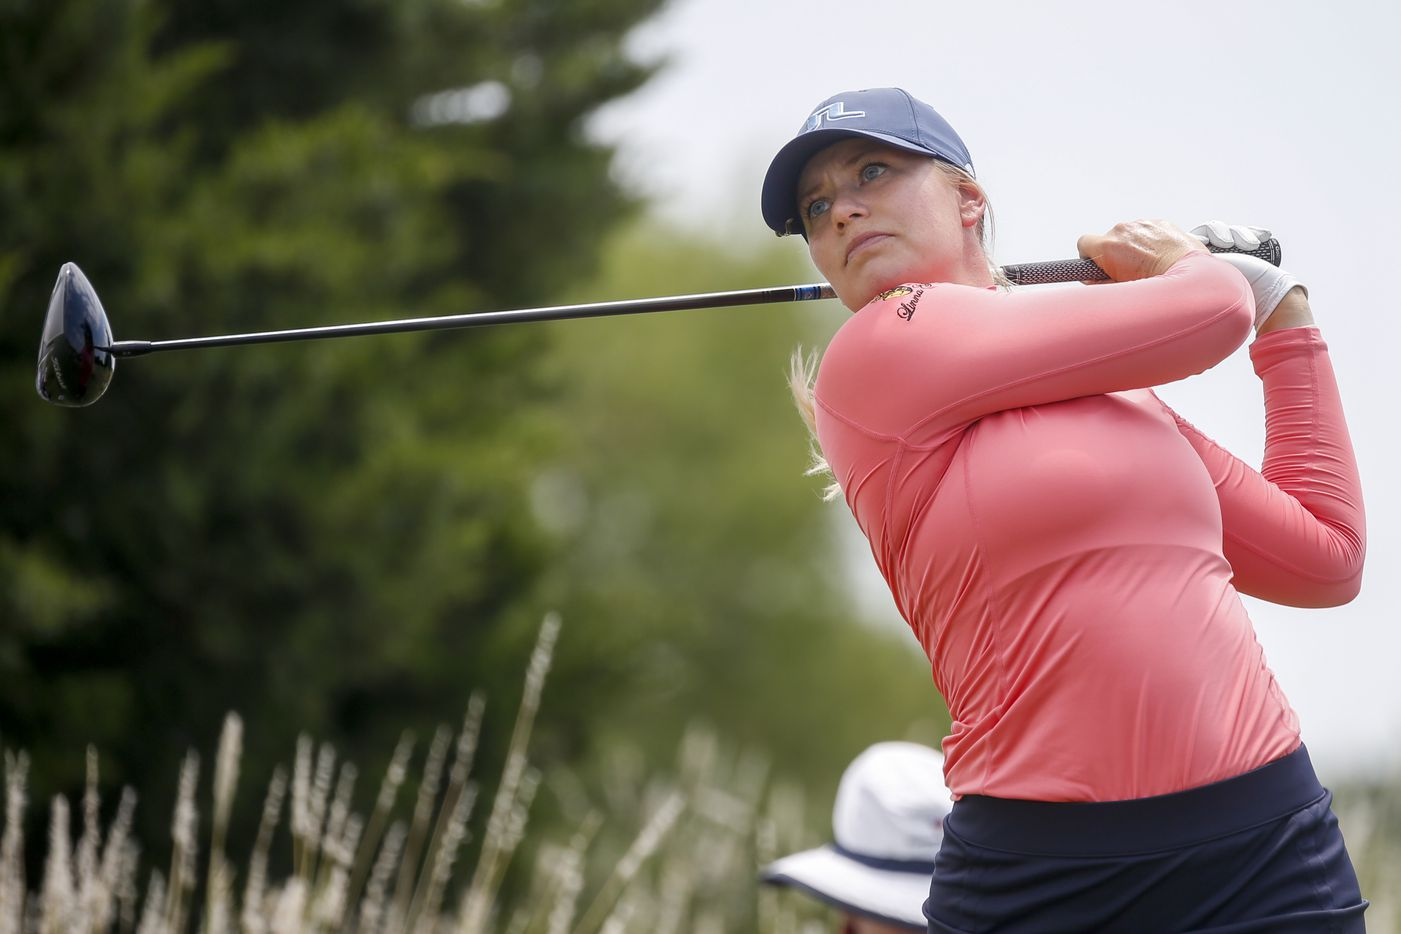 Professional golfer Matilda Castren hits off the No. 4 tee box during the final round of the LPGA VOA Classic on Sunday, July 4, 2021, in The Colony, Texas. (Elias Valverde II/The Dallas Morning News)